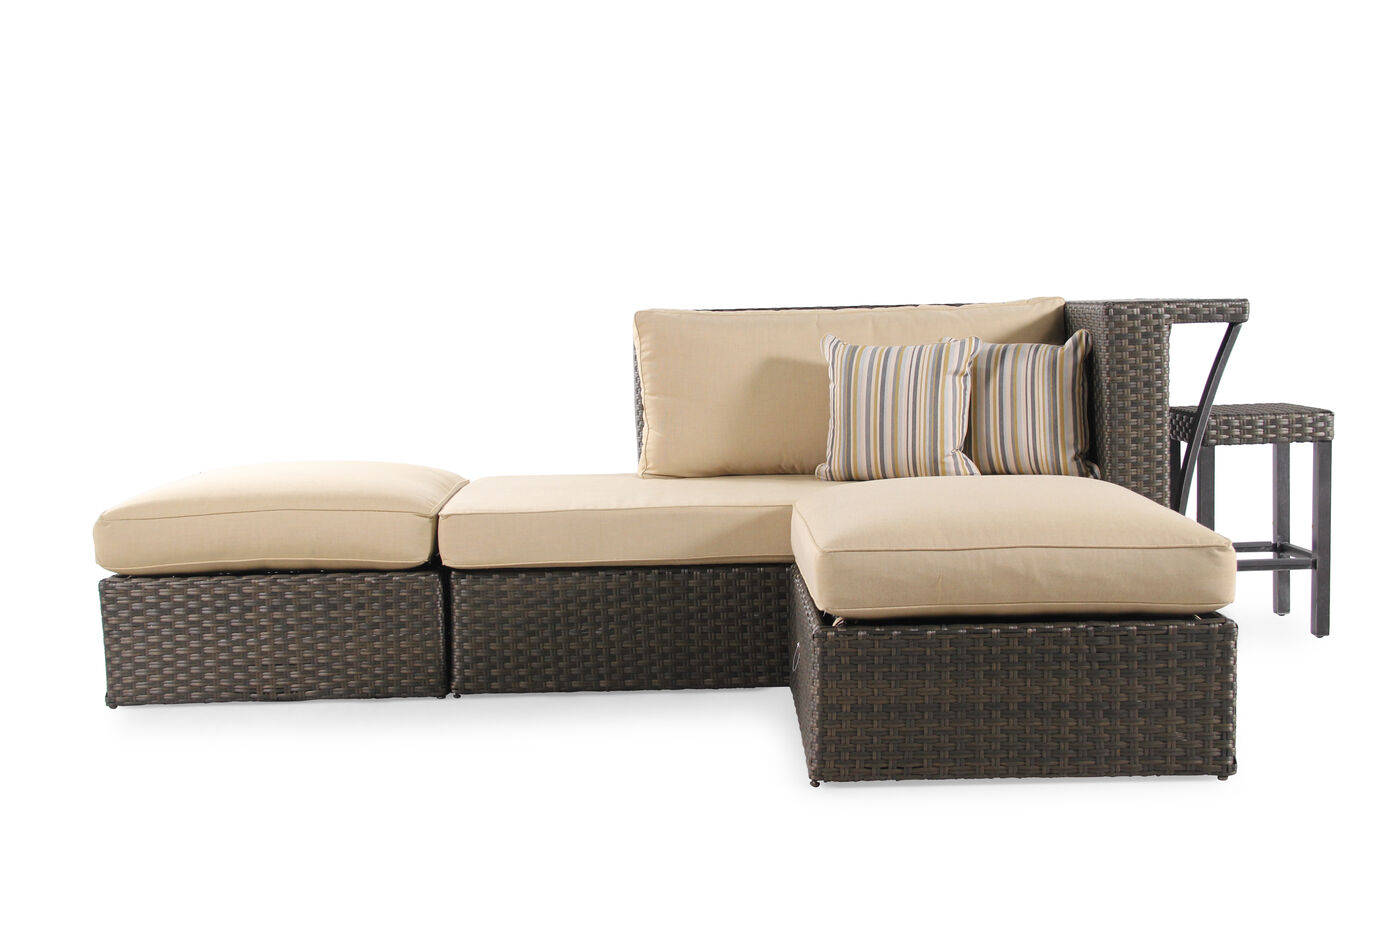 Mathis Brothers Patio Furniture mathis brothers patio furniture cute s with inspiration